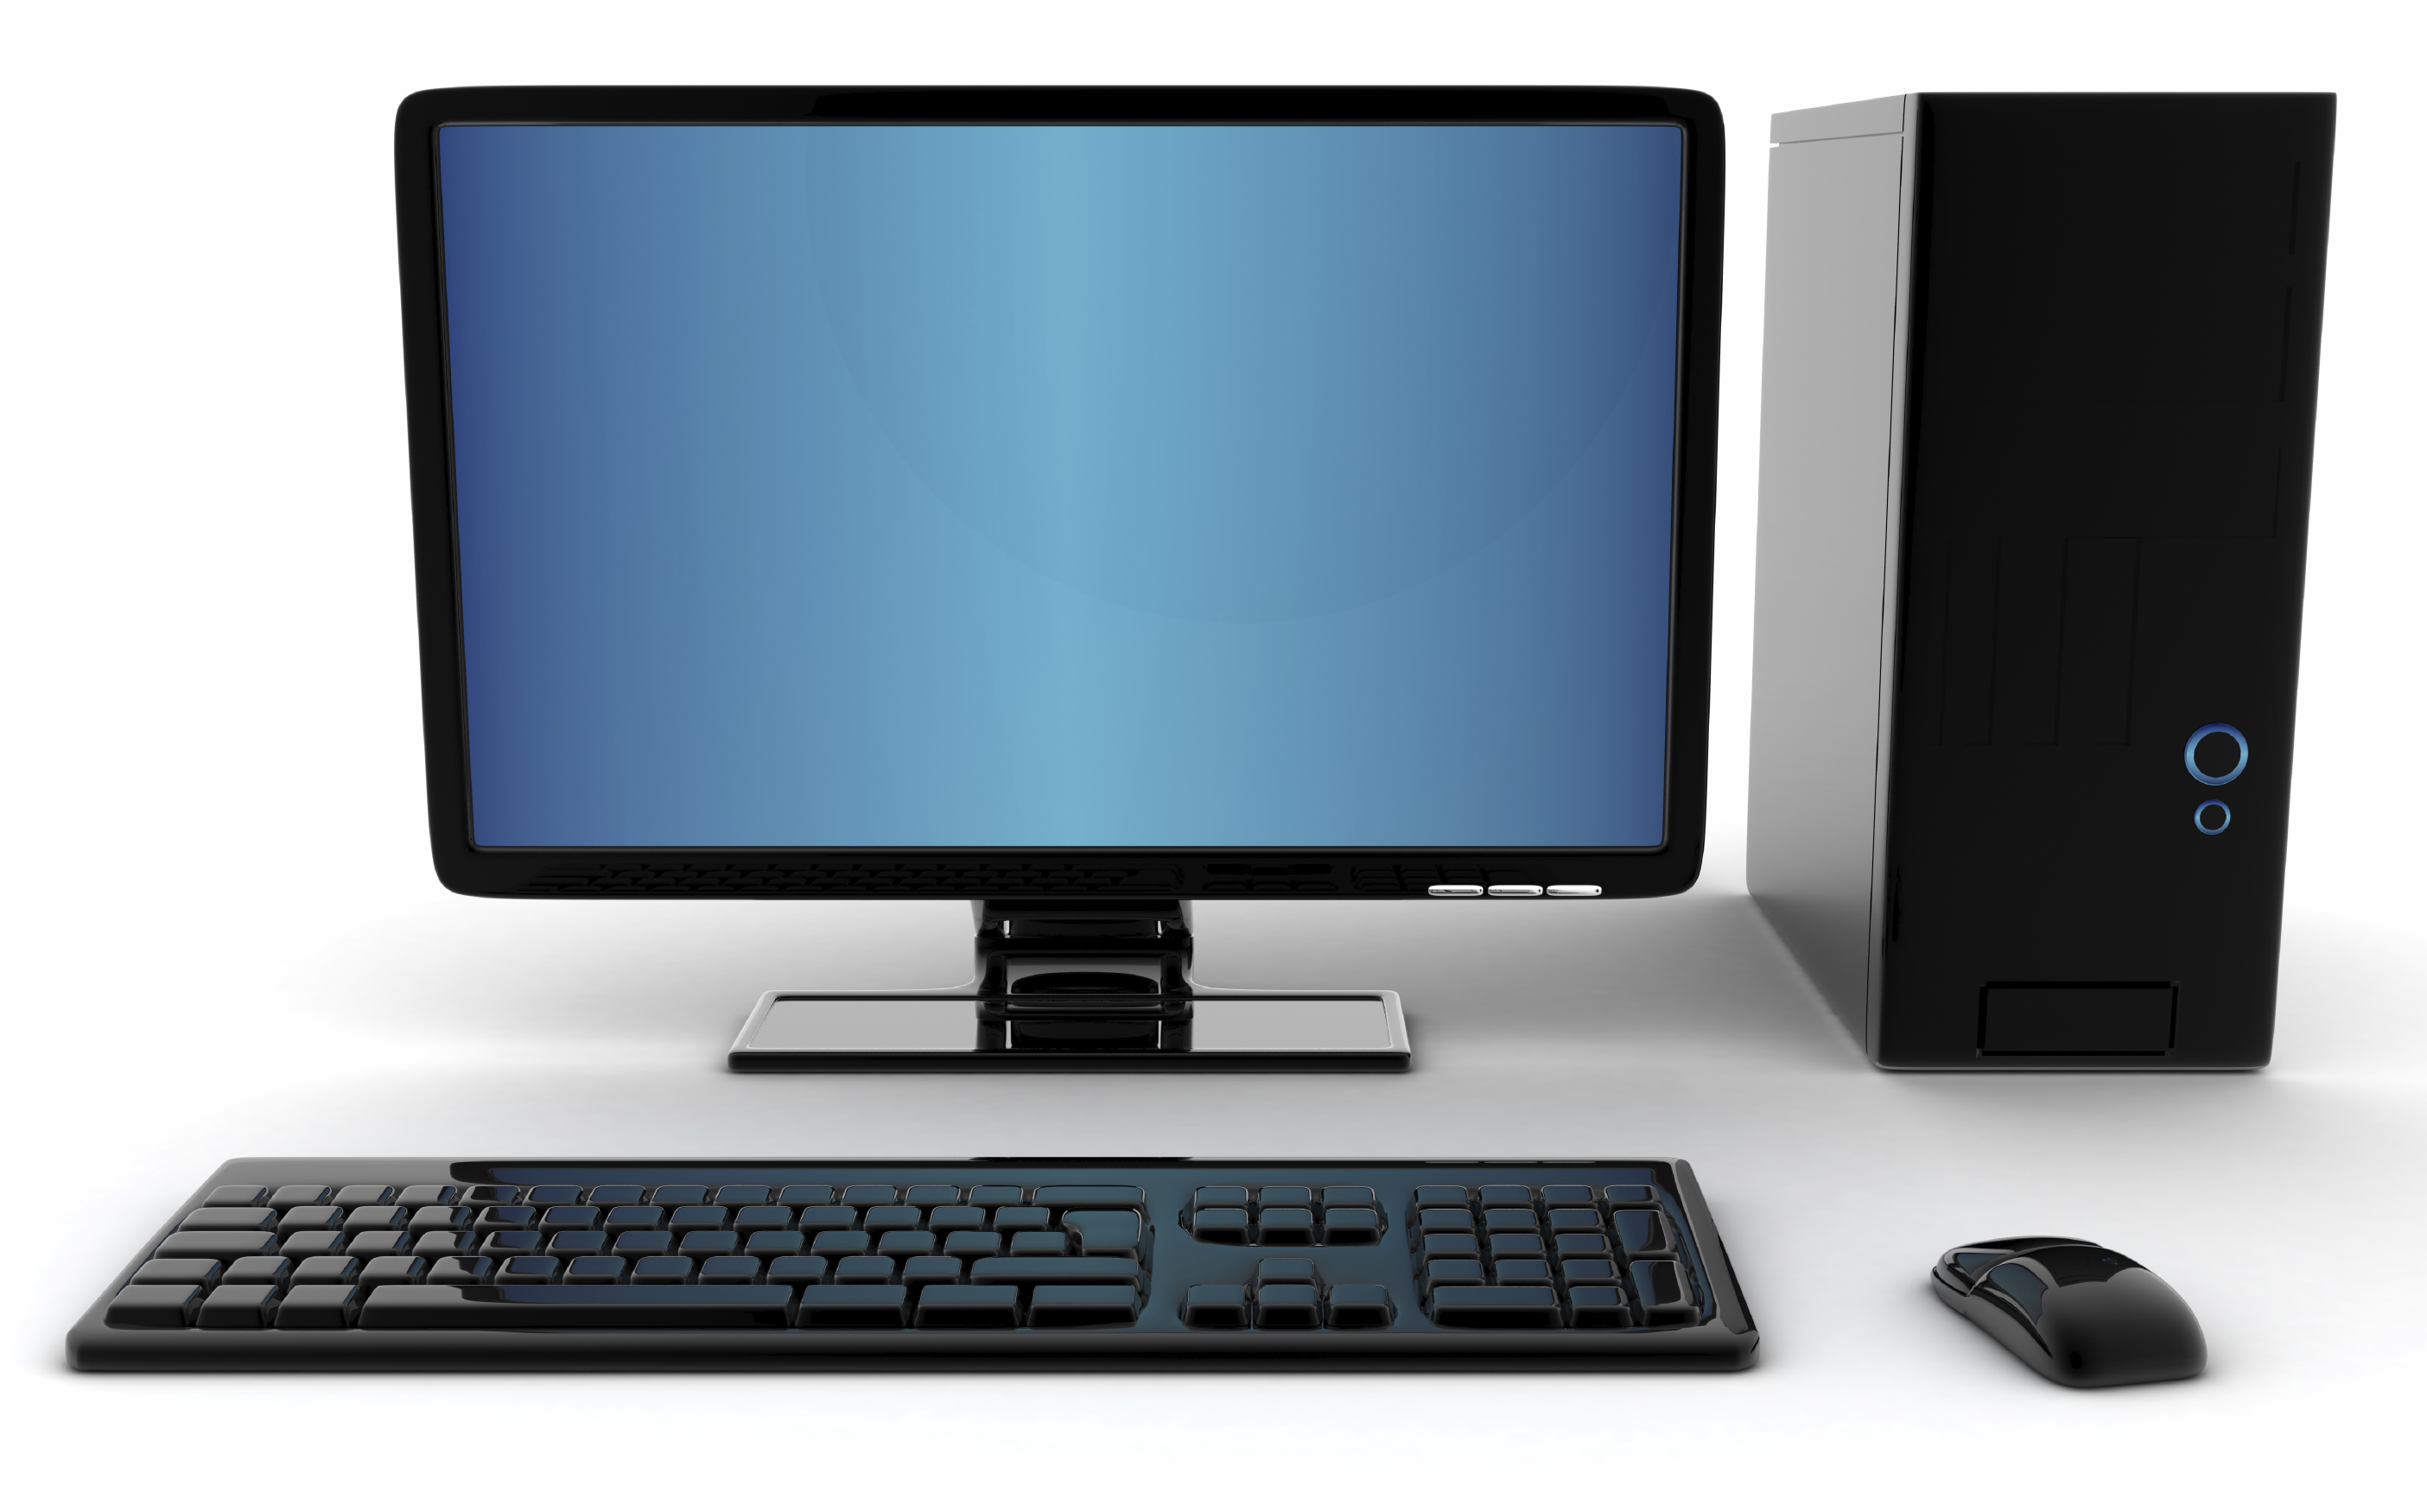 Need Help With Desktop Computers? Check Out These Top Tips!